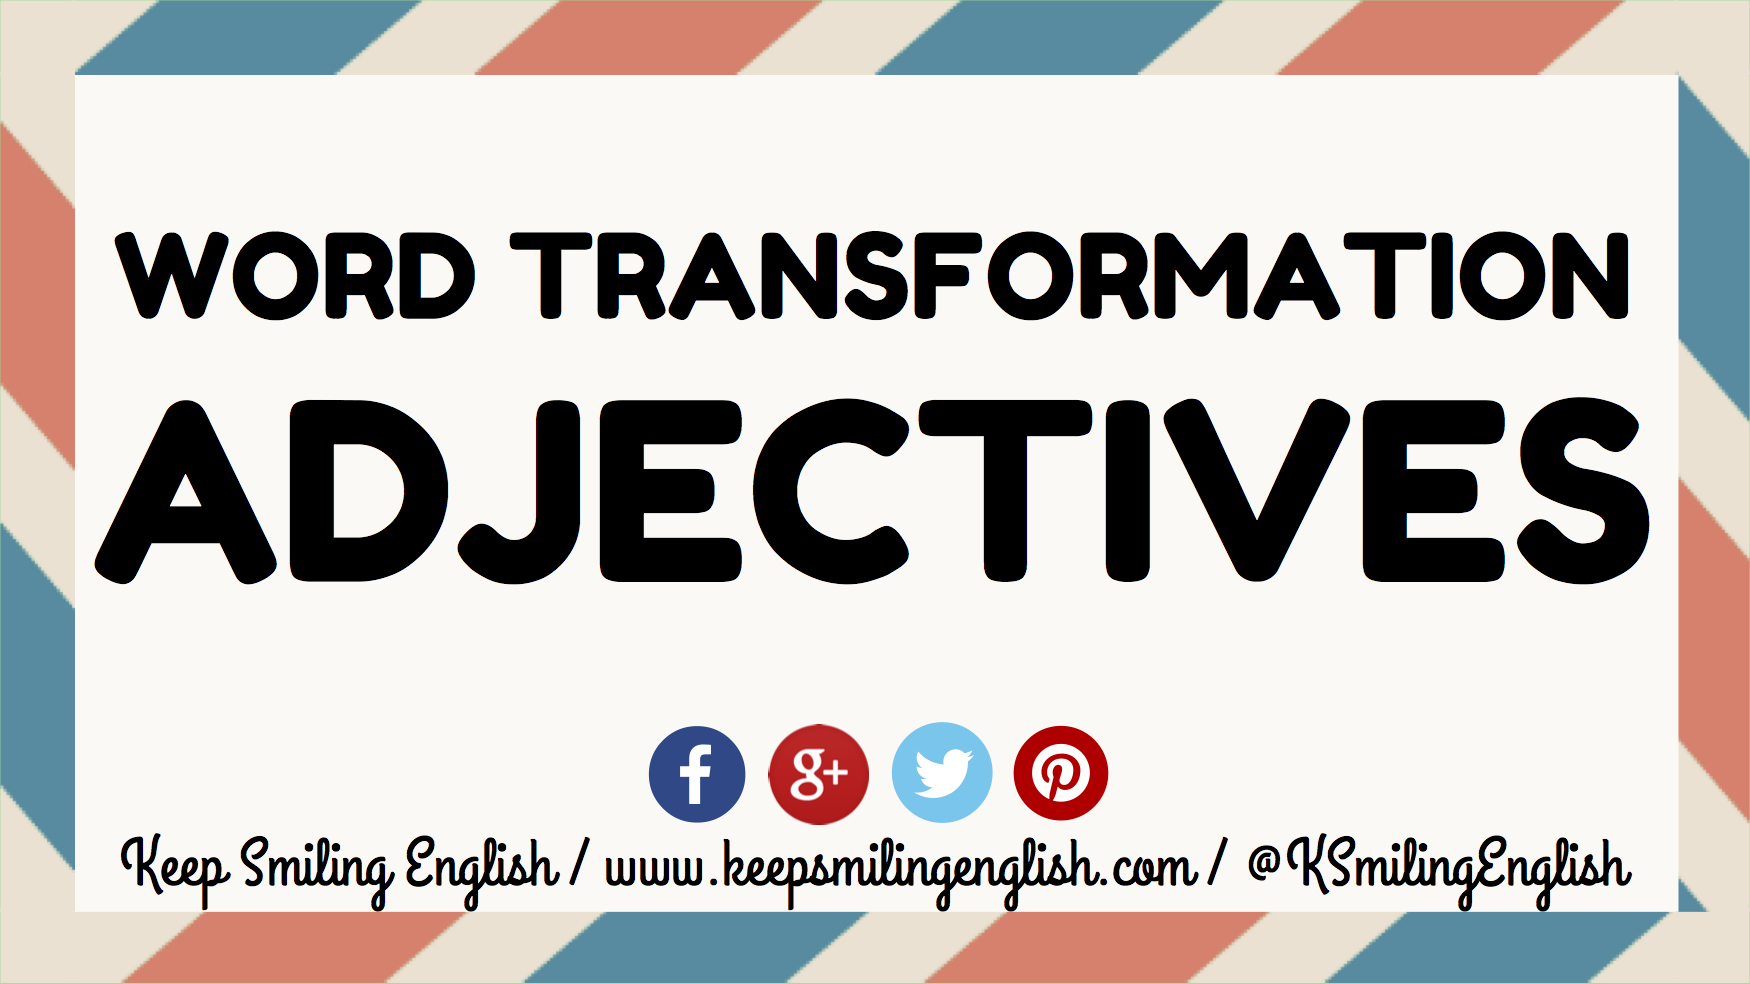 Word Transformation: Adjectives - Keep Smiling English